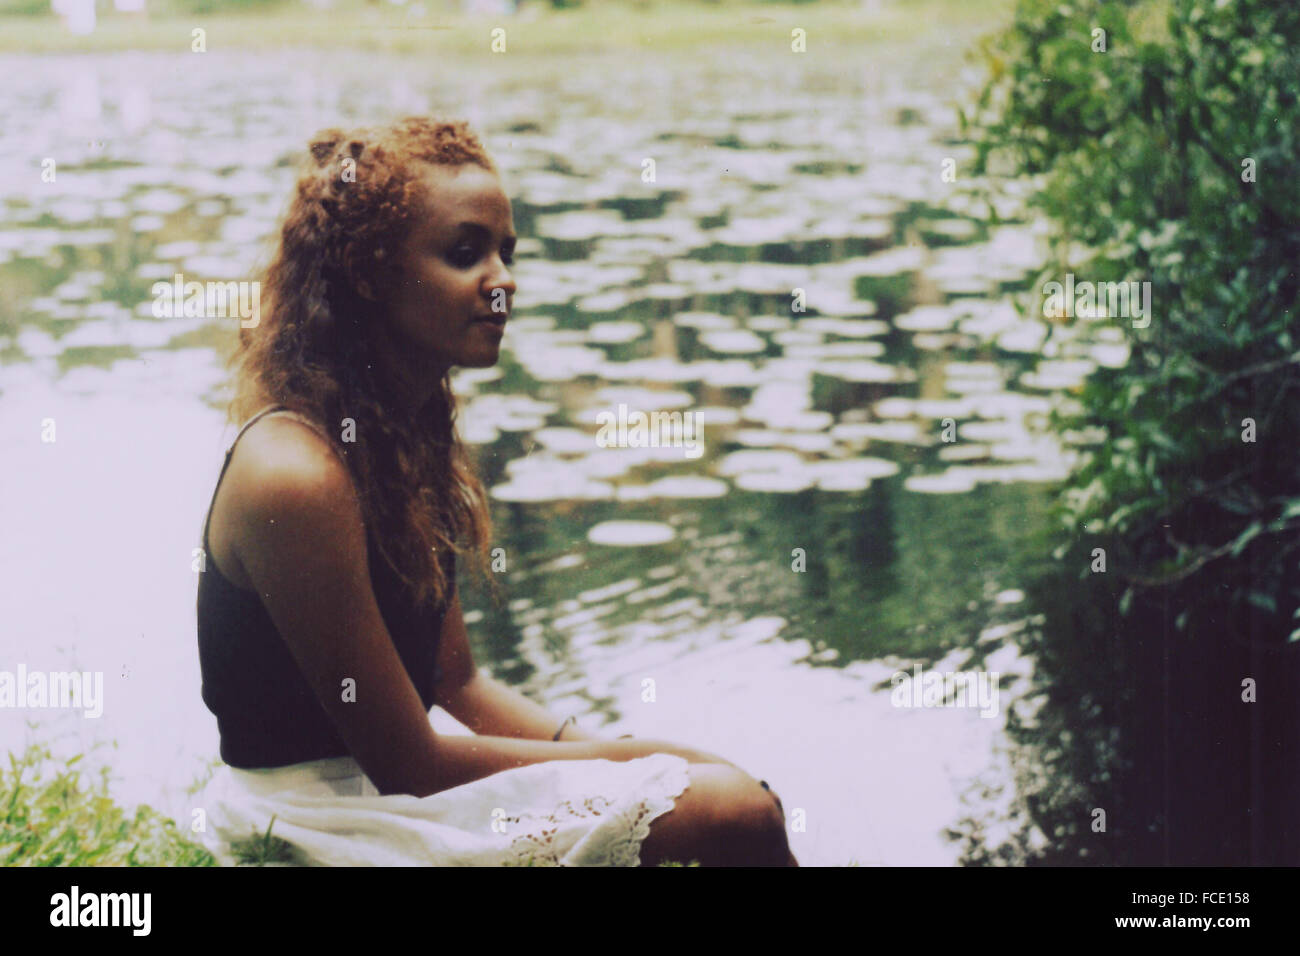 Smiling Teenage Girl sitting by Lake Photo Stock